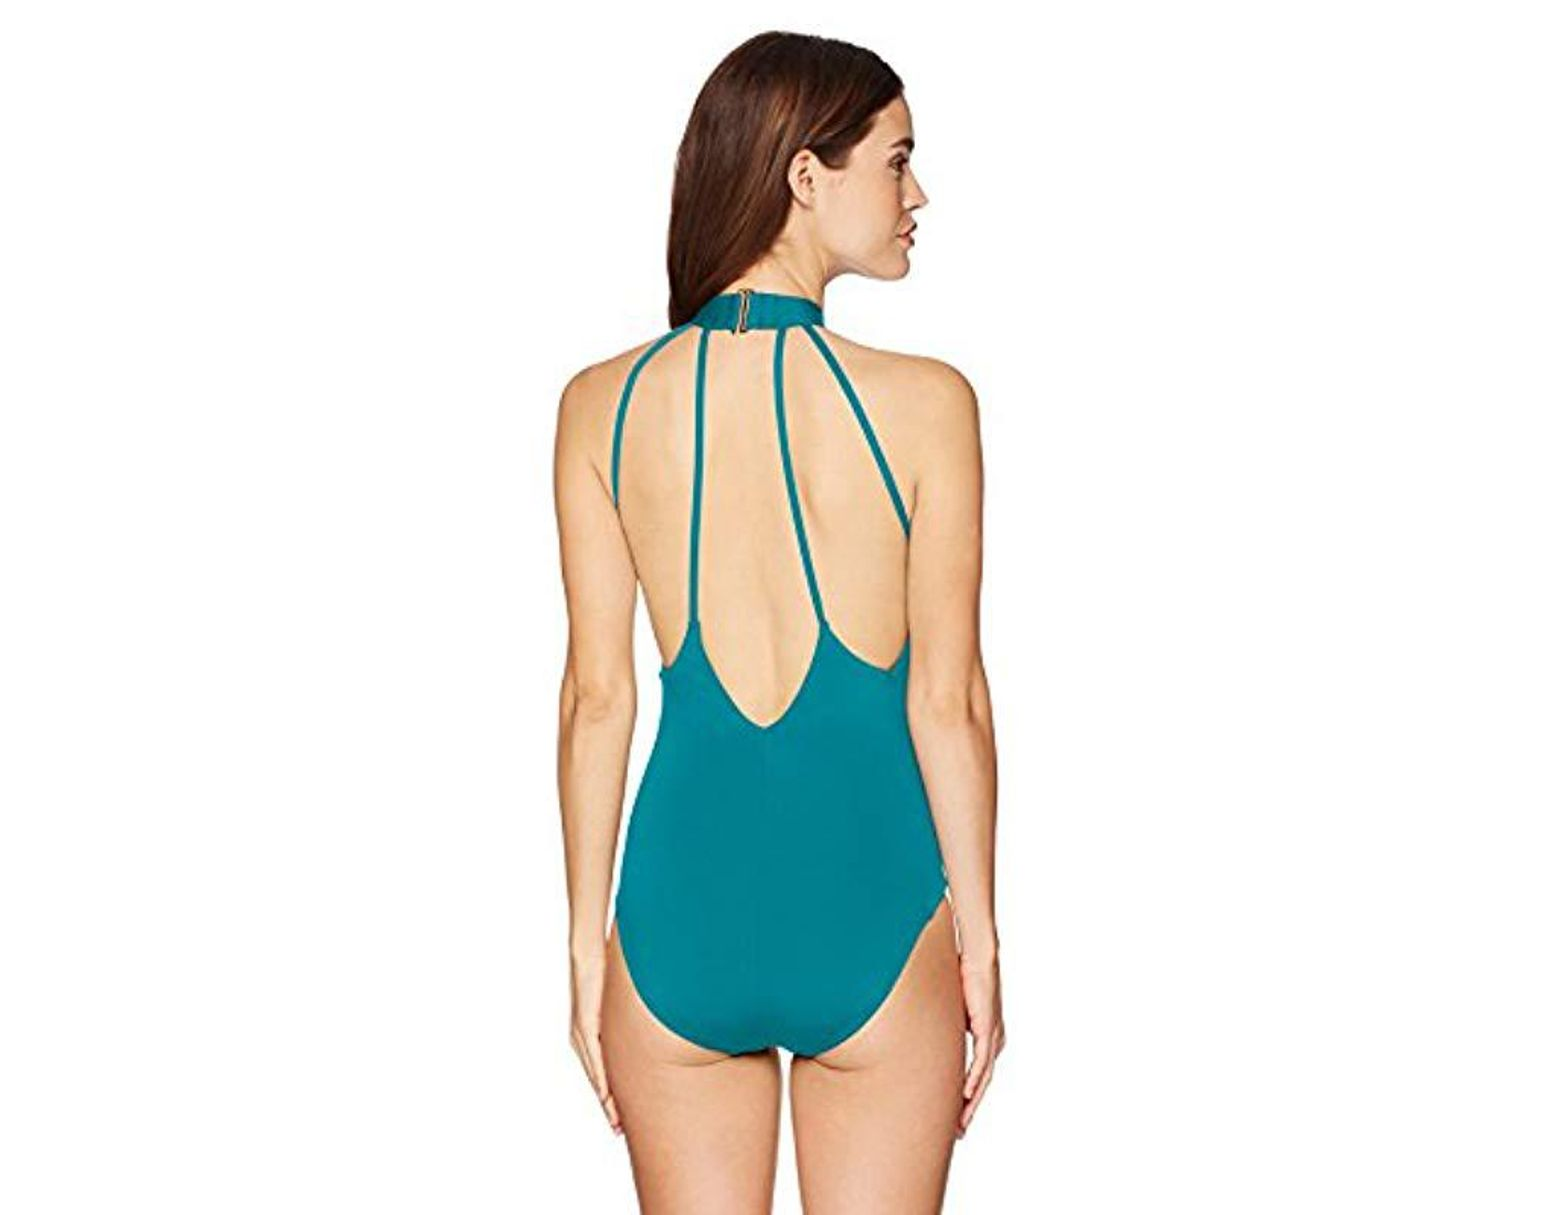 75a4ce199 Laundry by Shelli Segal Italian Luxe Solids Choker One Piece Swimsuit in  Blue - Save 24% - Lyst